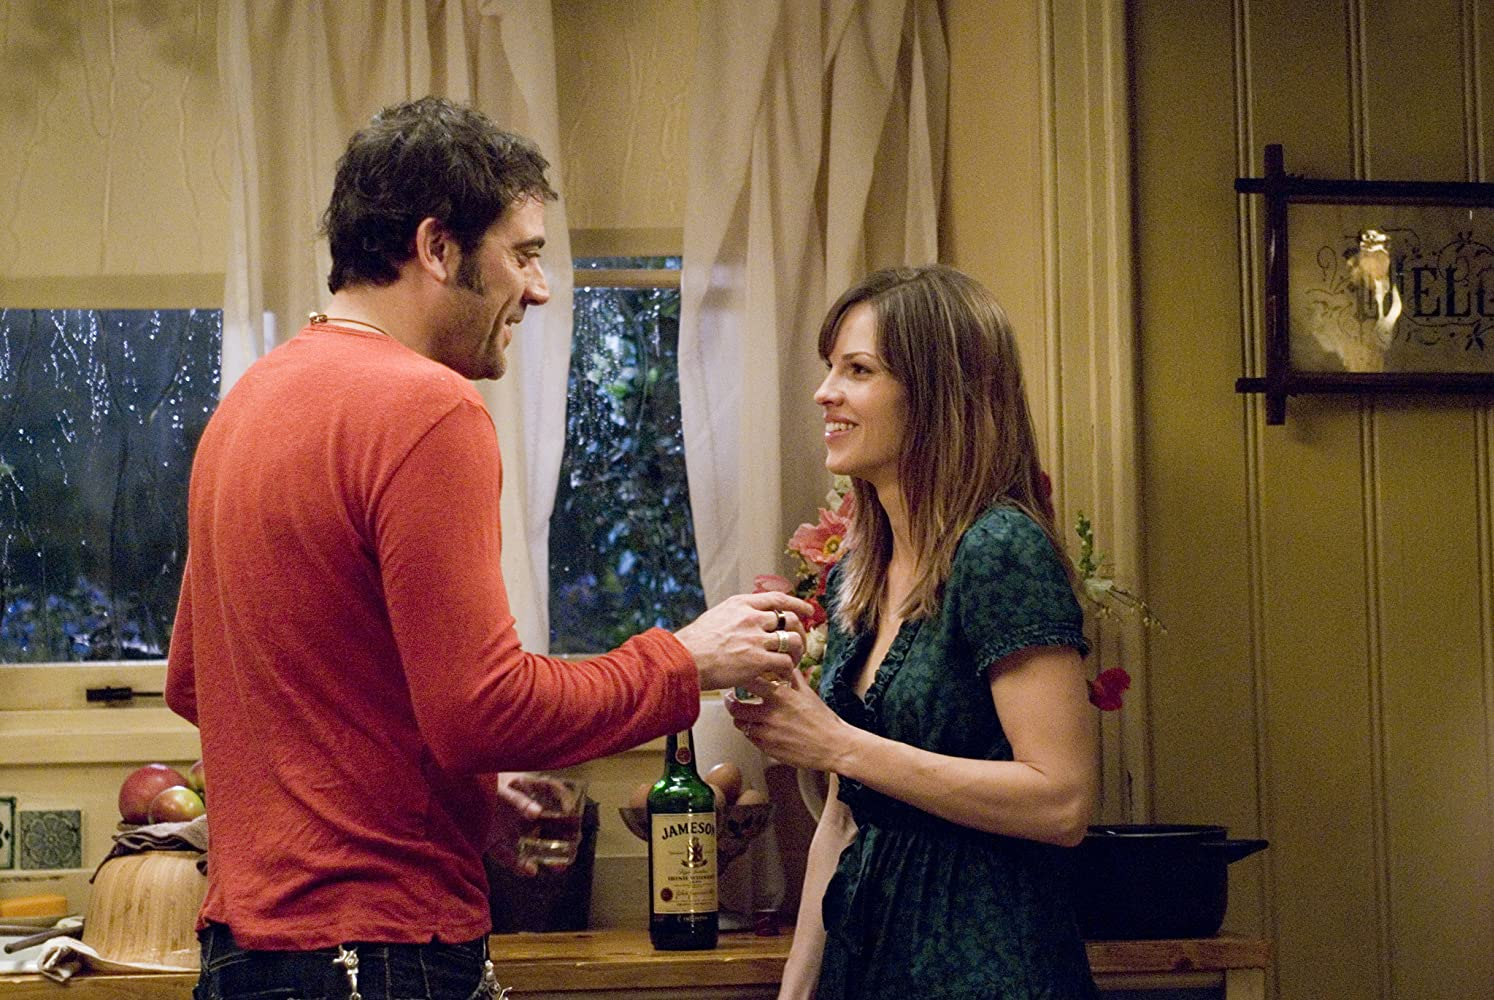 Hilary Swank and Jeffrey Dean Morgan in P.S. I Love You (2007)